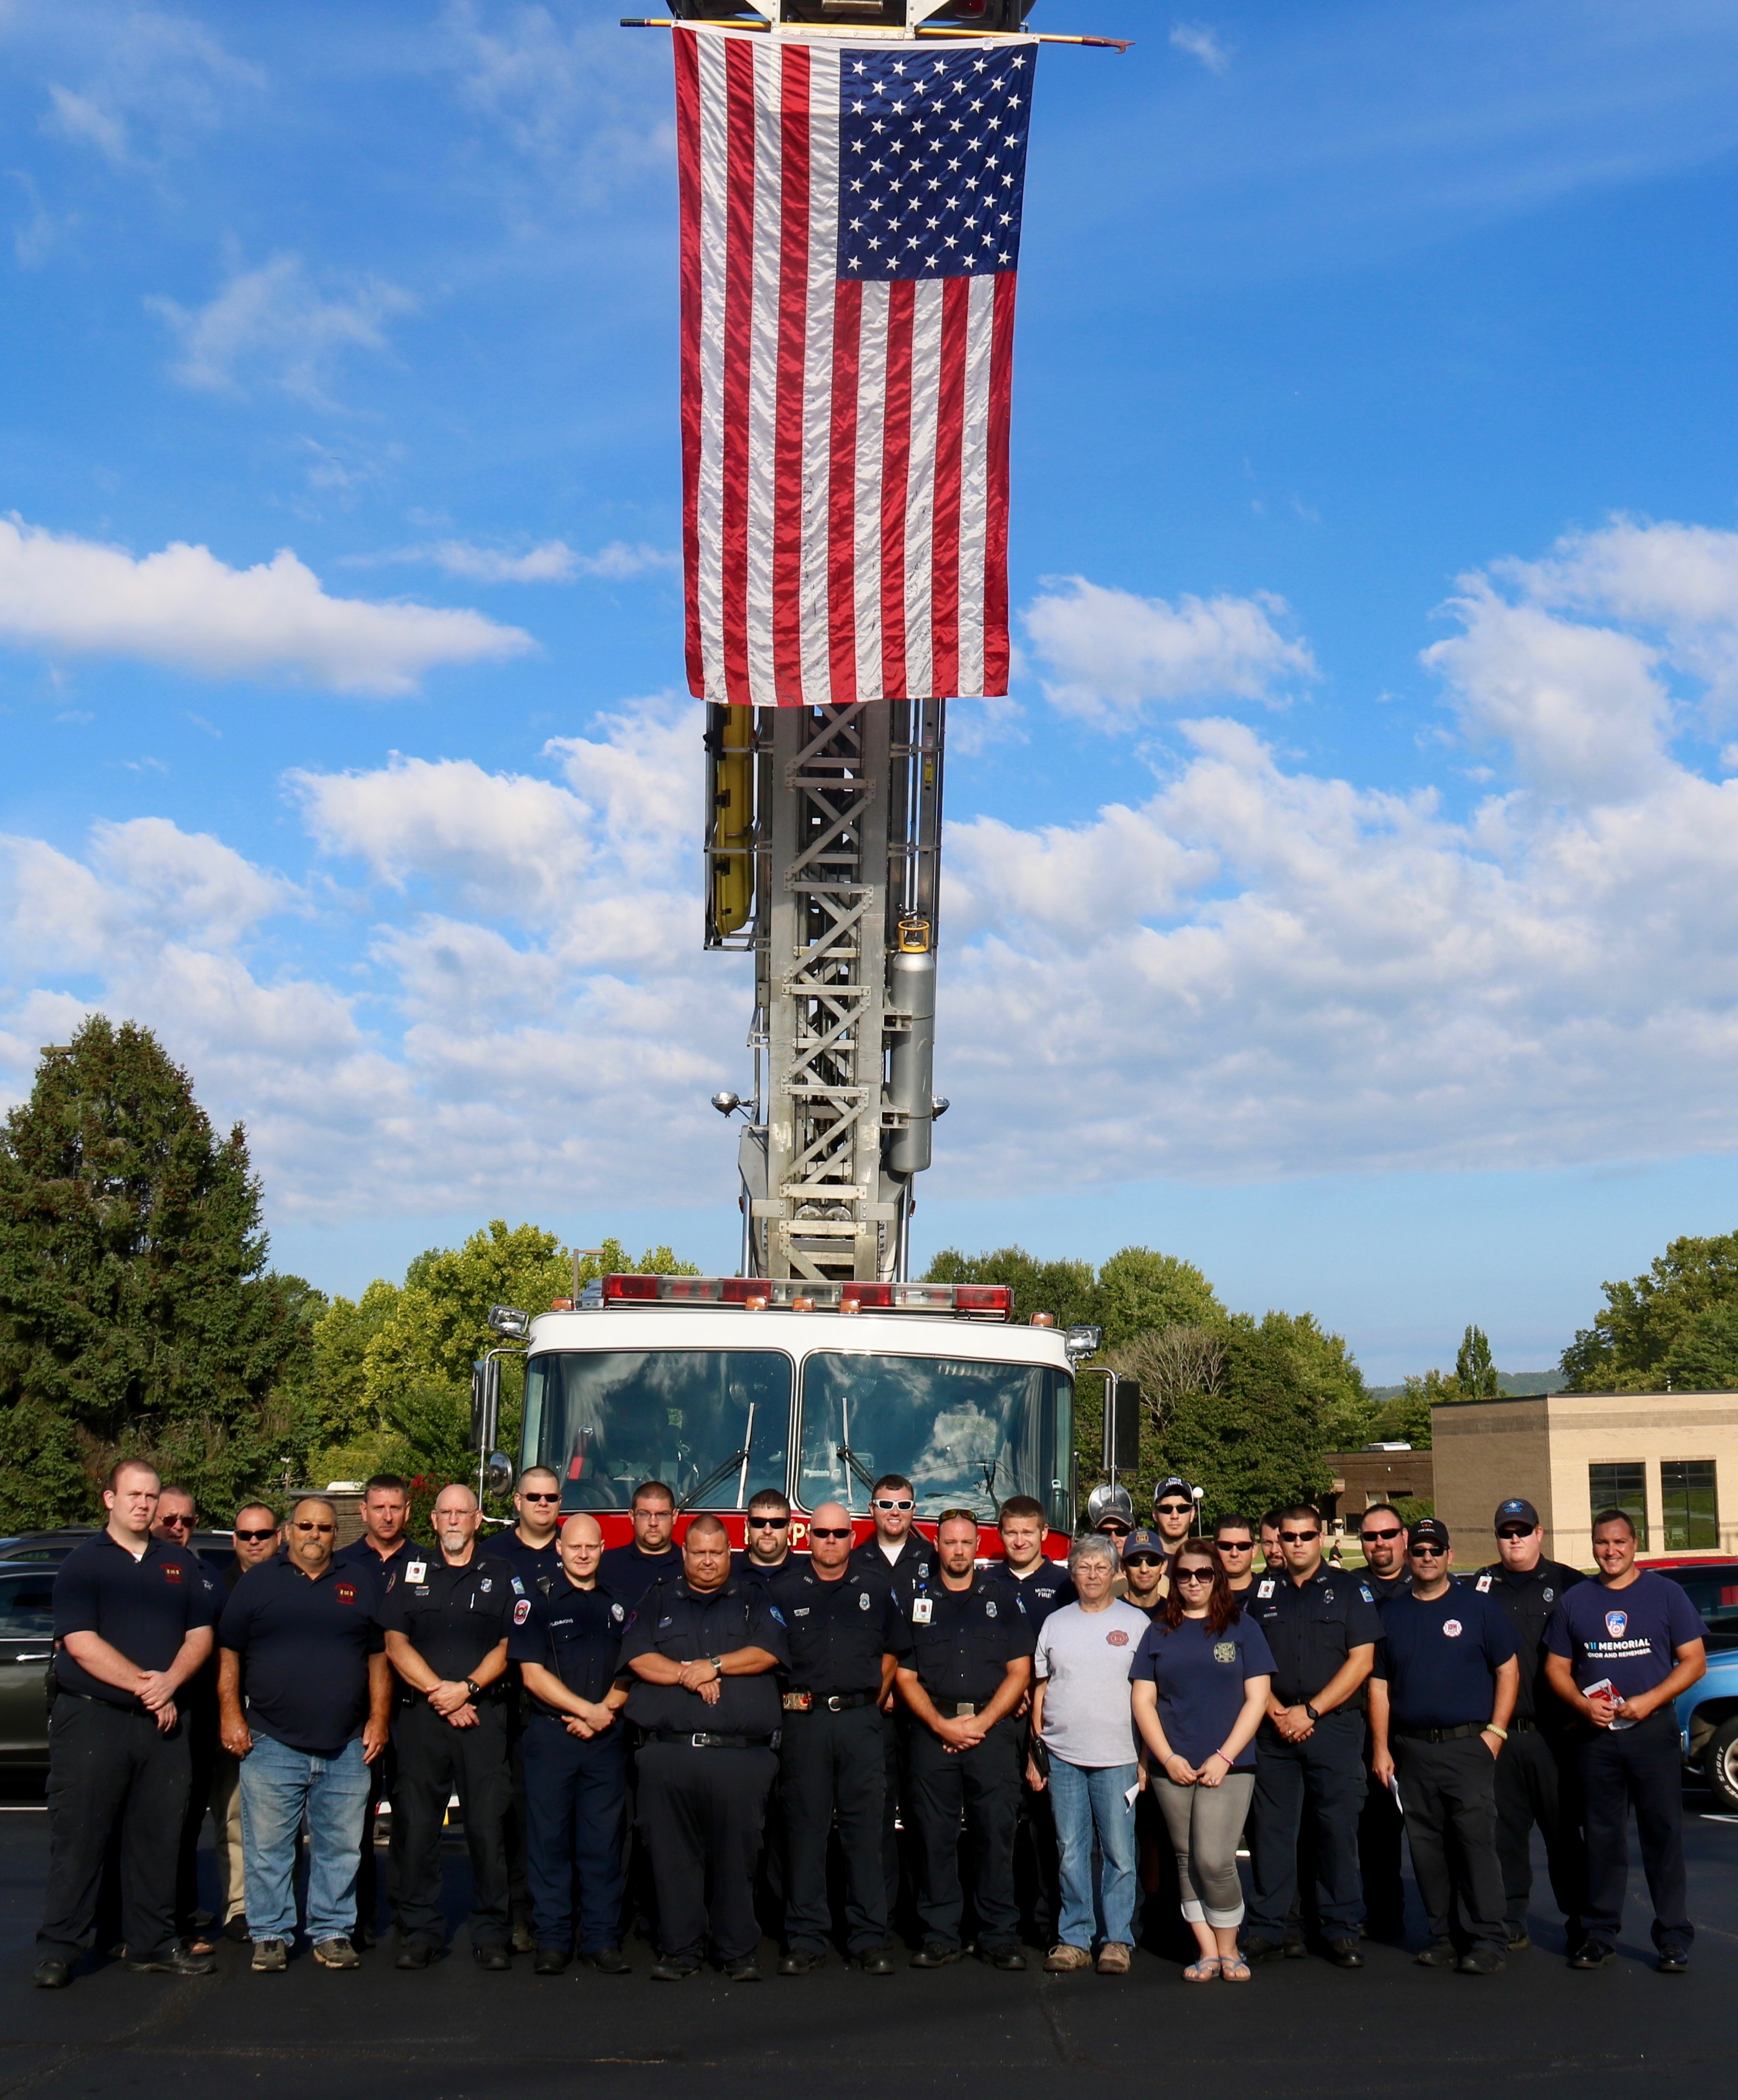 Representatives from a variety of local public safety departments pose at Tri-County Community College during a previous Patriot Day Memorial Ceremony.